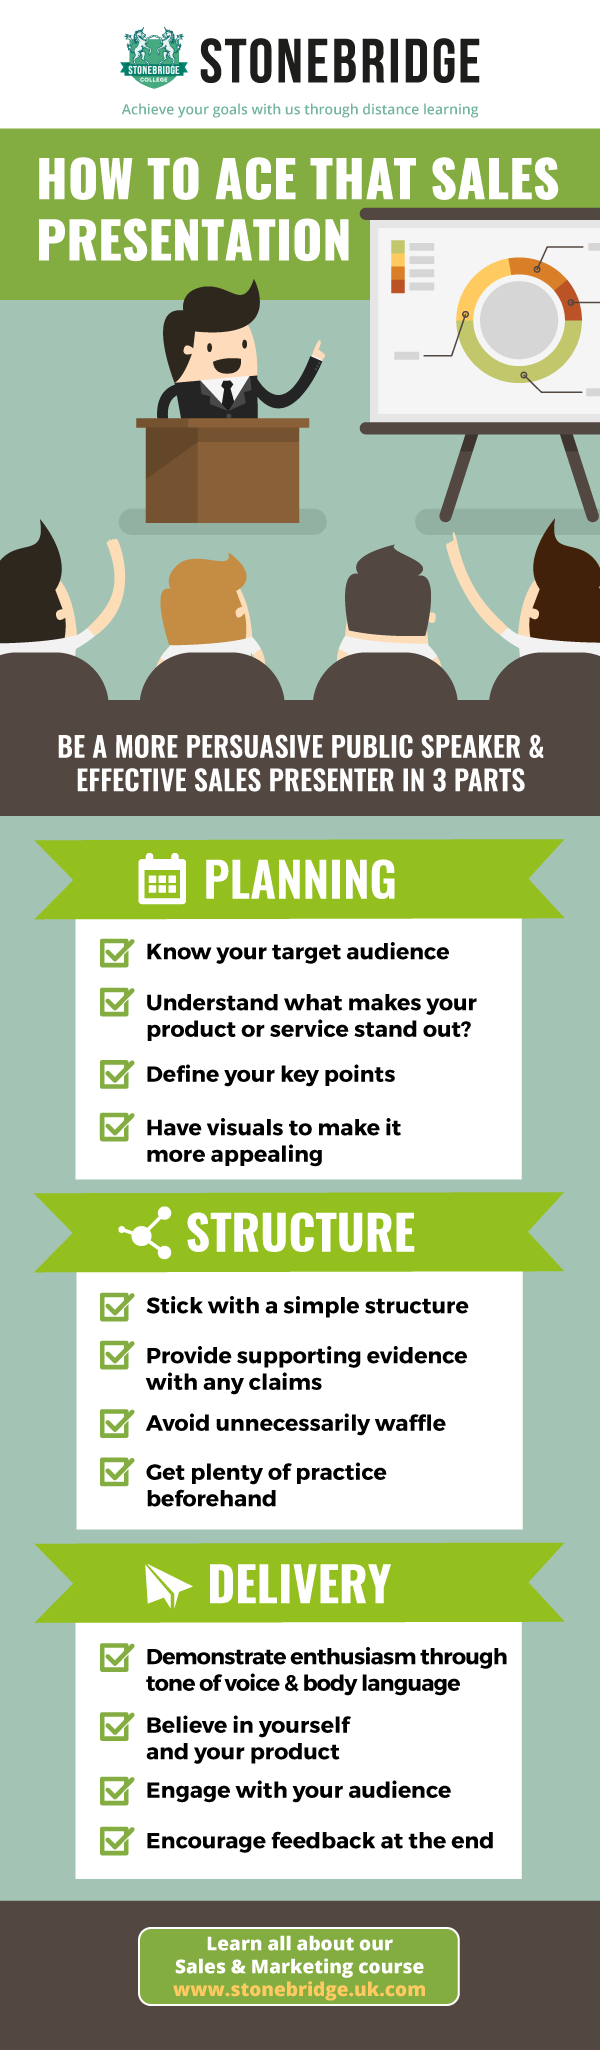 How to ace that sales presentation